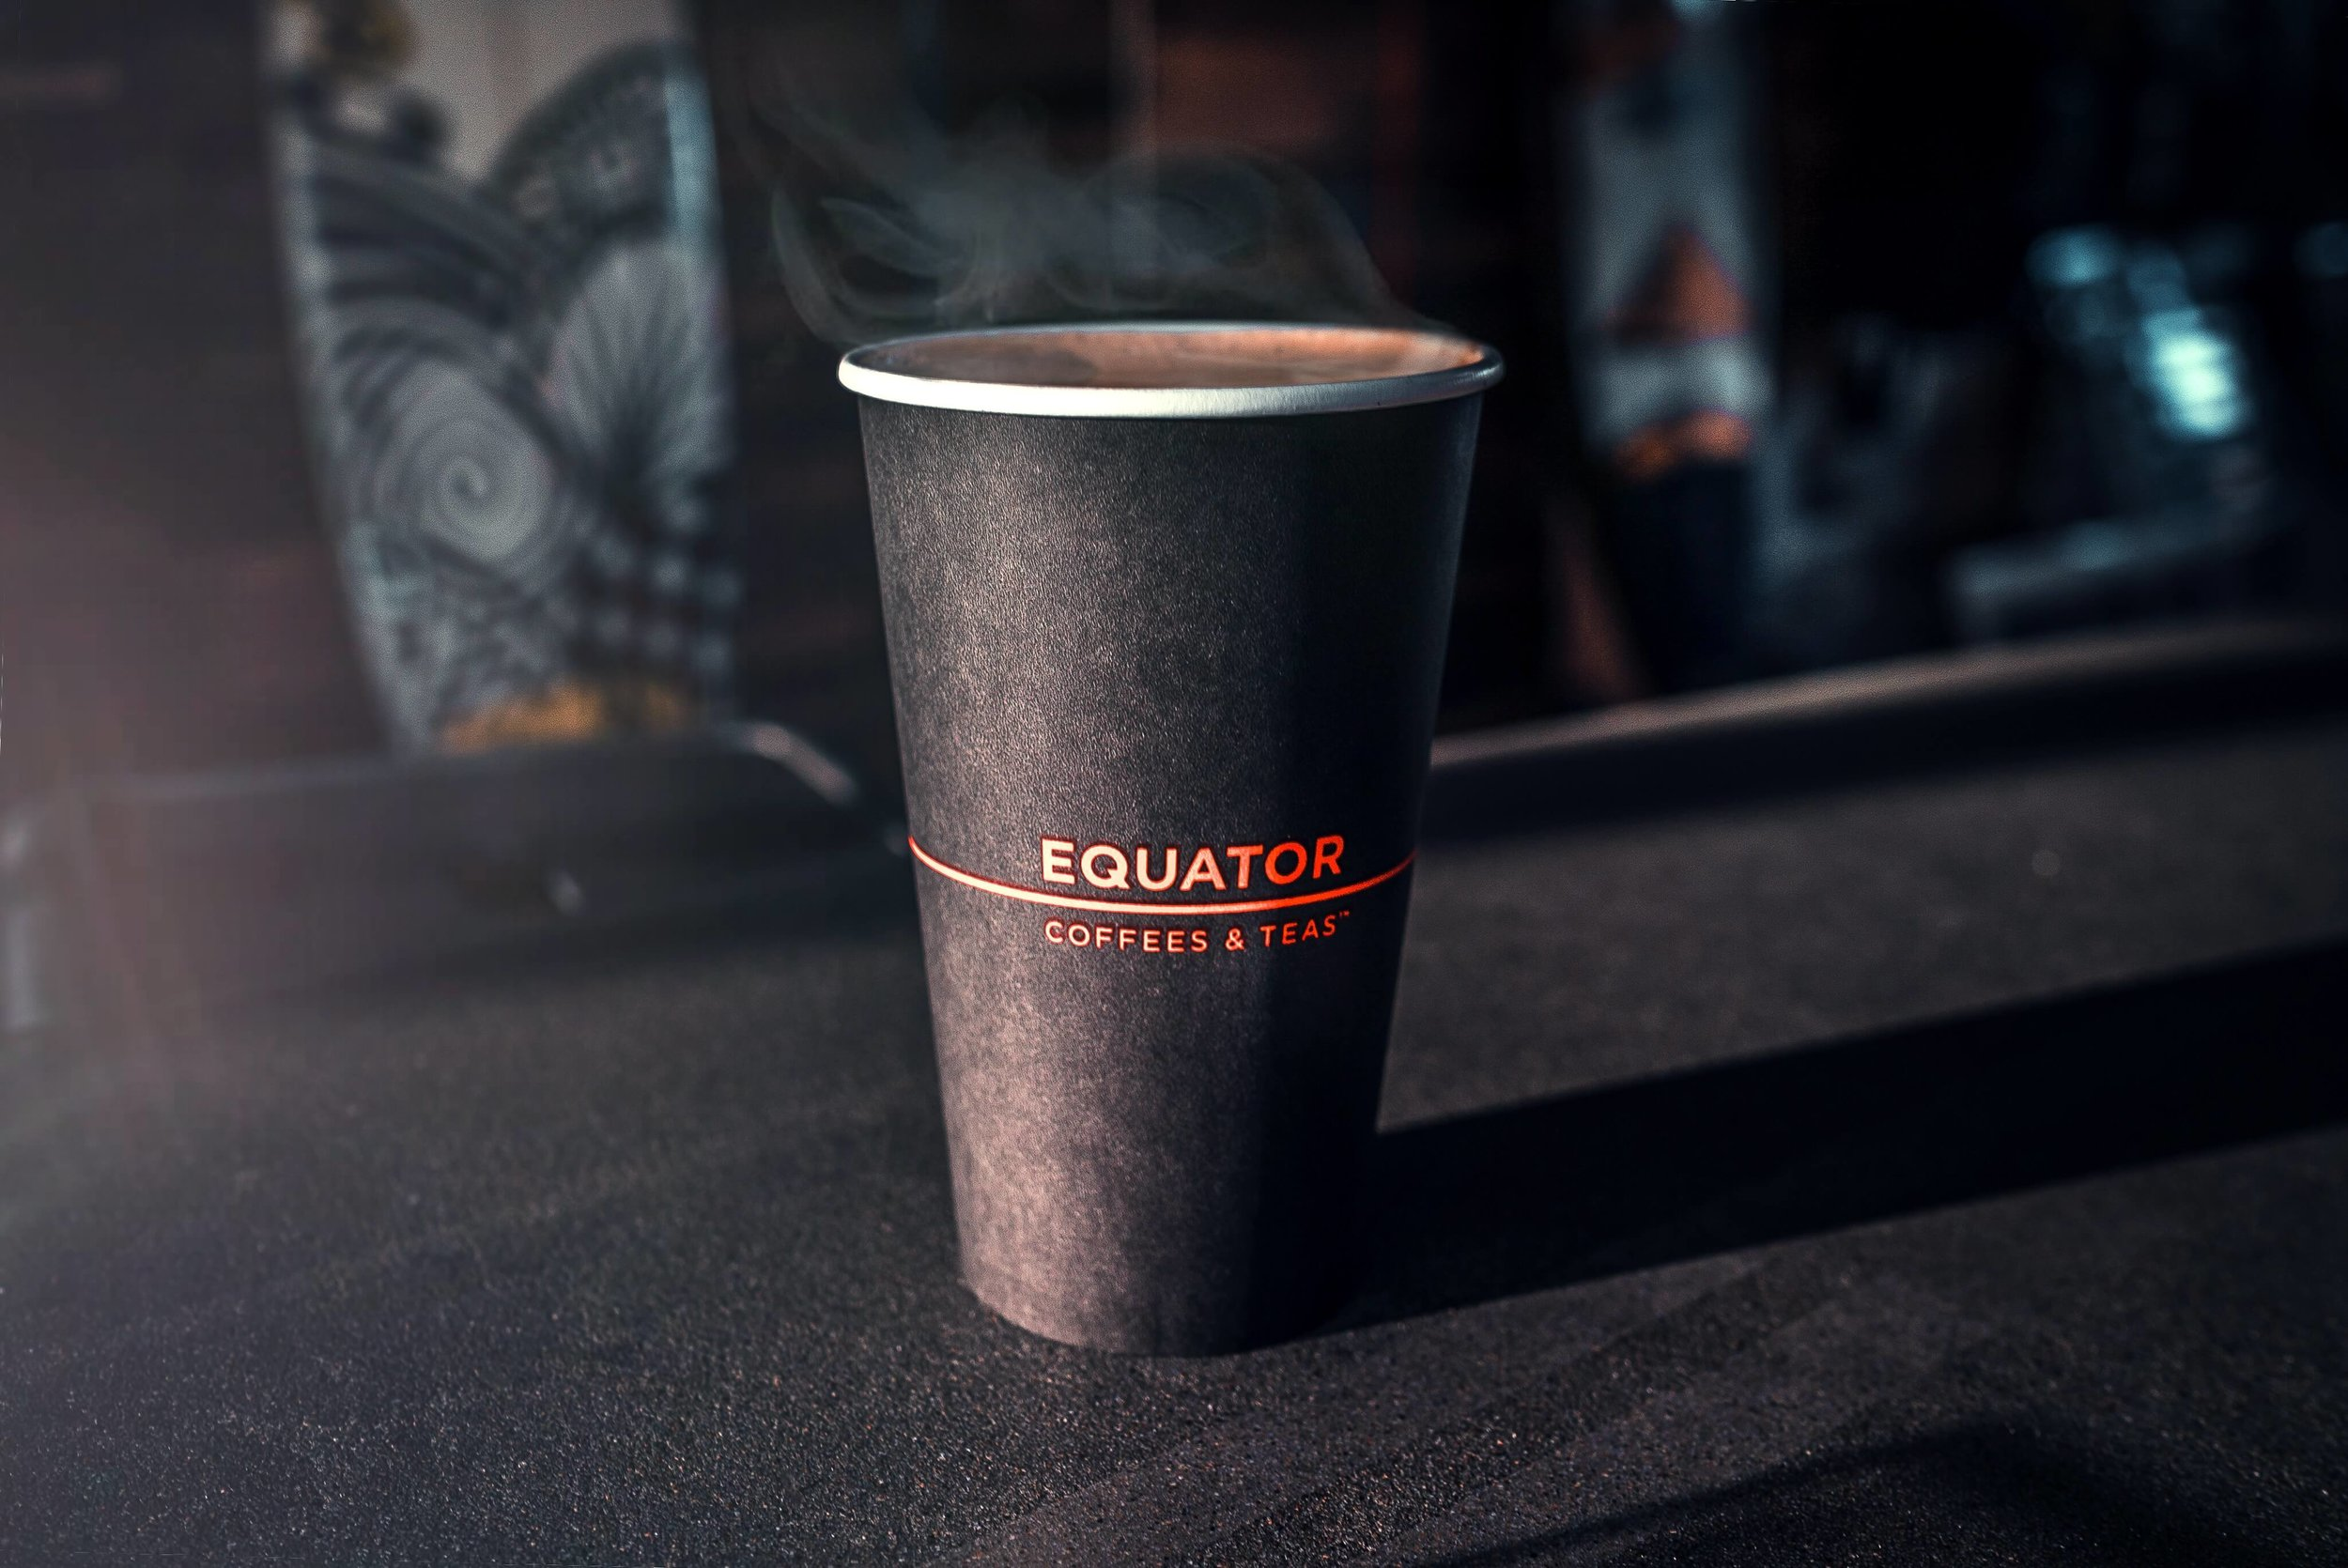 - If you want your brand out there you need to have branded paper cups. These cups will travel beyond the doors of your establishment and do the talking for you.Our high quality cups are the perfect canvas for your logo or design. With a poly lining on the inside, they are perfect for hot or cold beverages. Great for restaurants, cafes, and hotels. Also 100% recyclable.